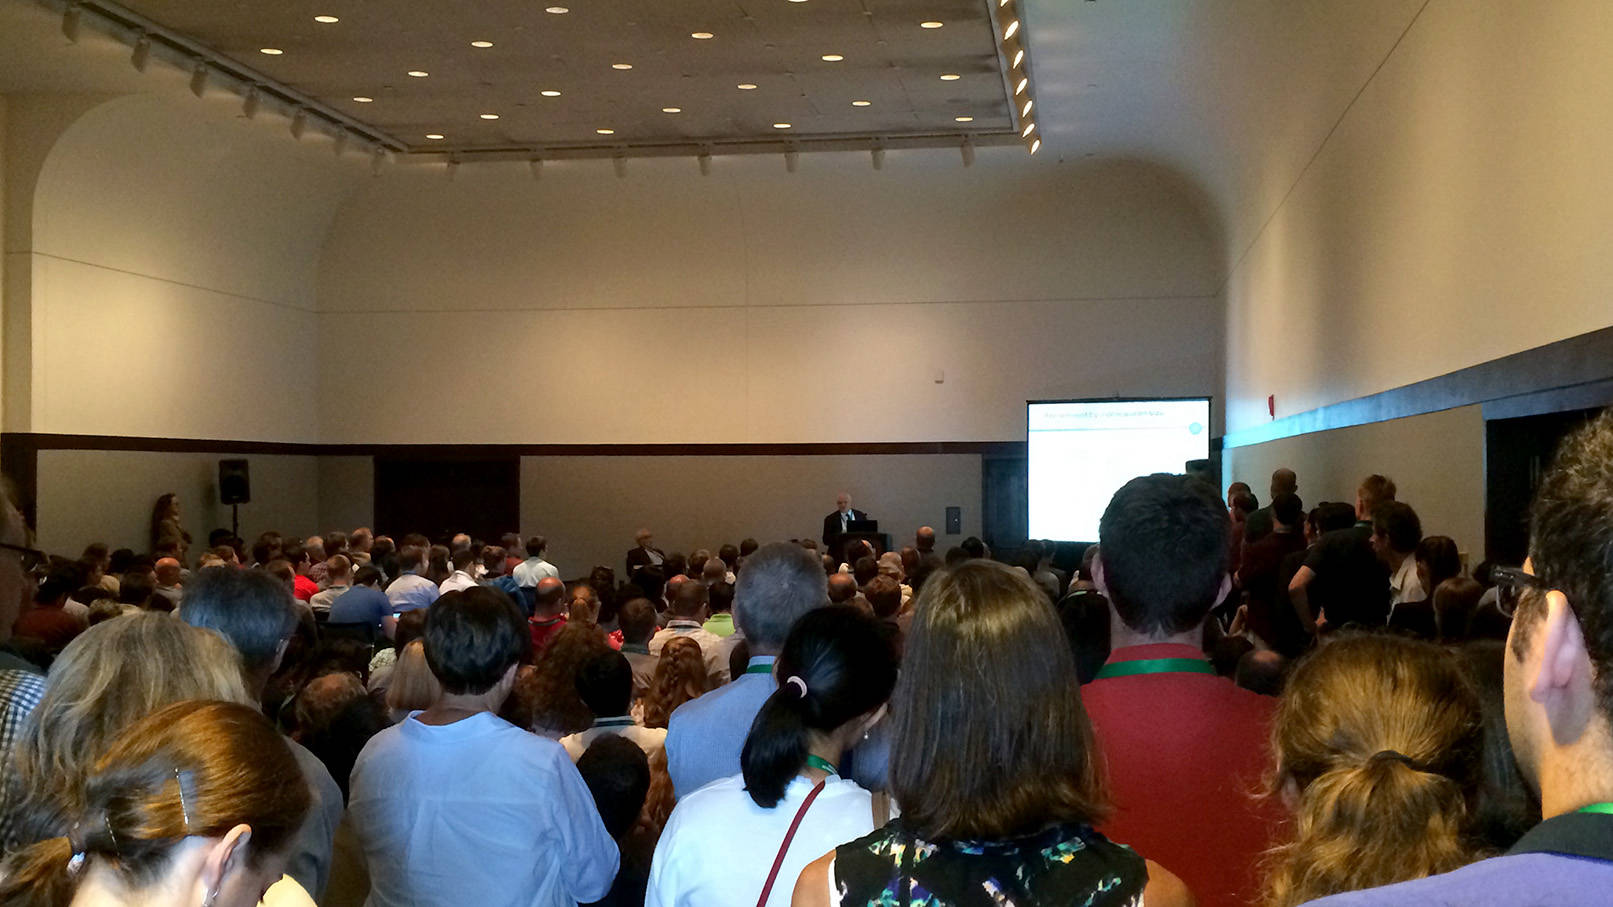 1st ISB Symposium on Motor Control in Biomechanics at WCB 2014, Boston (USA)